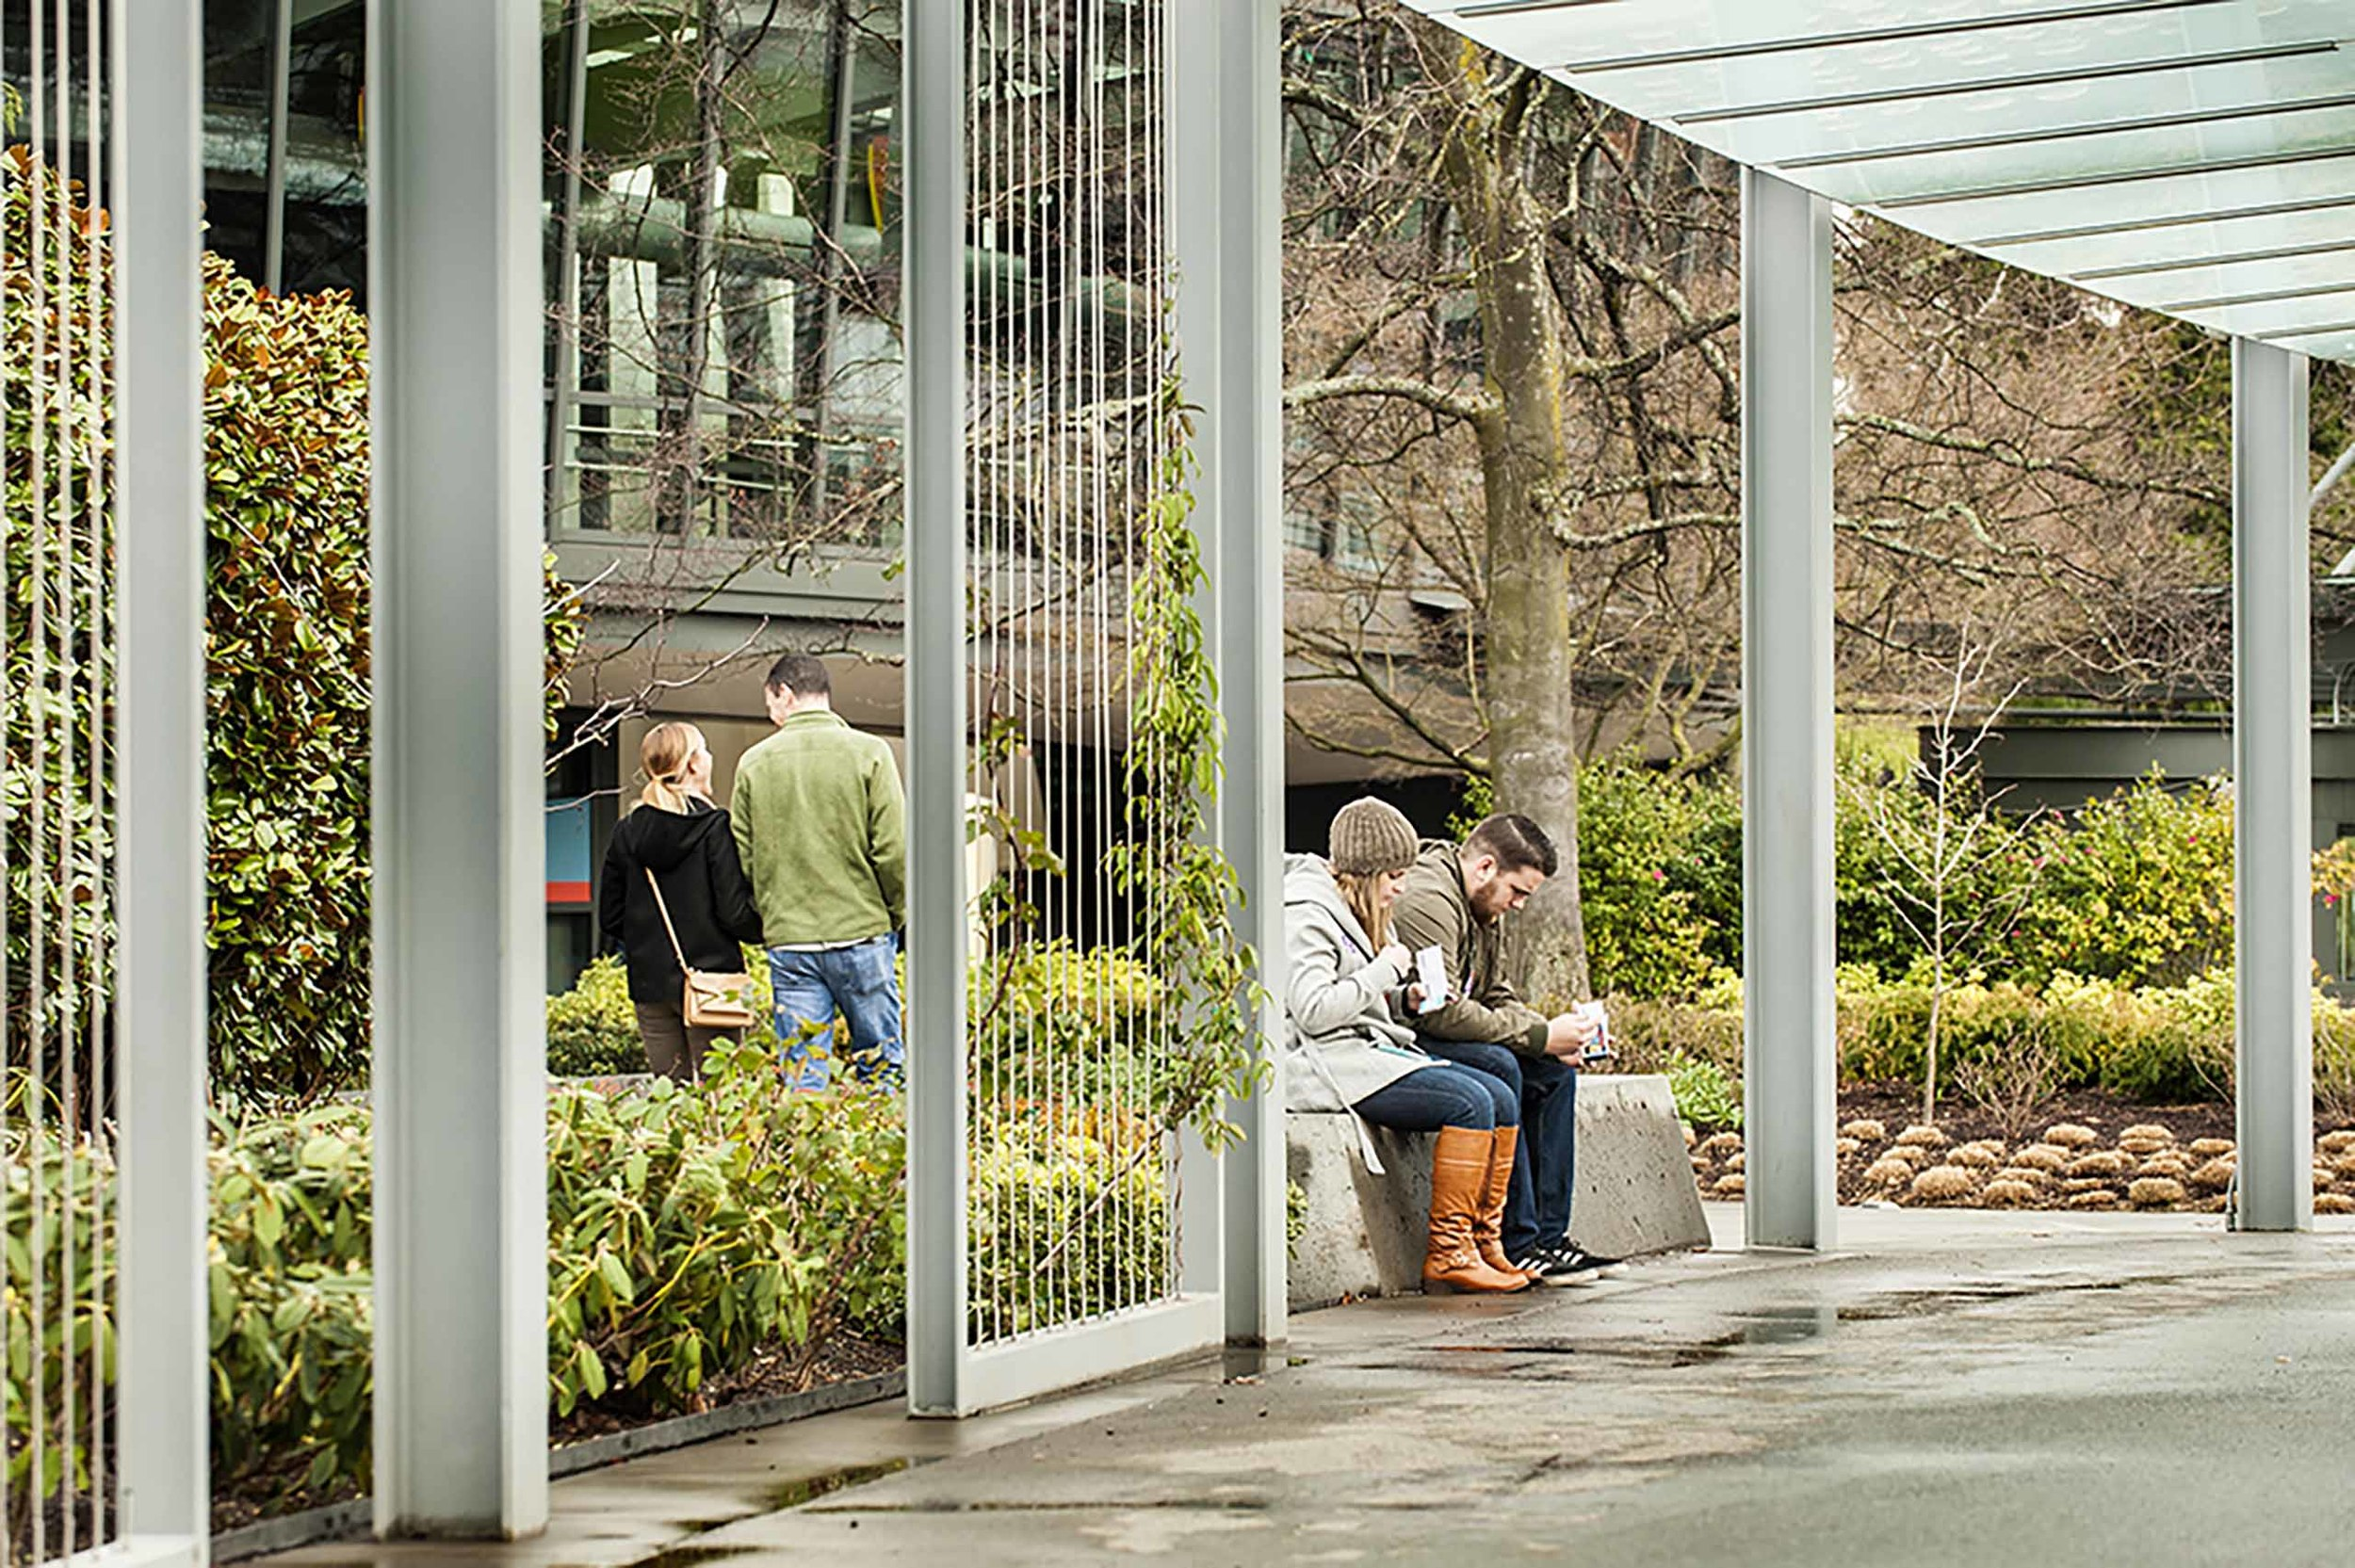 Land Morphology designed the planting areas and South Trellis between Chihuly Garden and Glass and the Space Needle in Seattle, Washington.